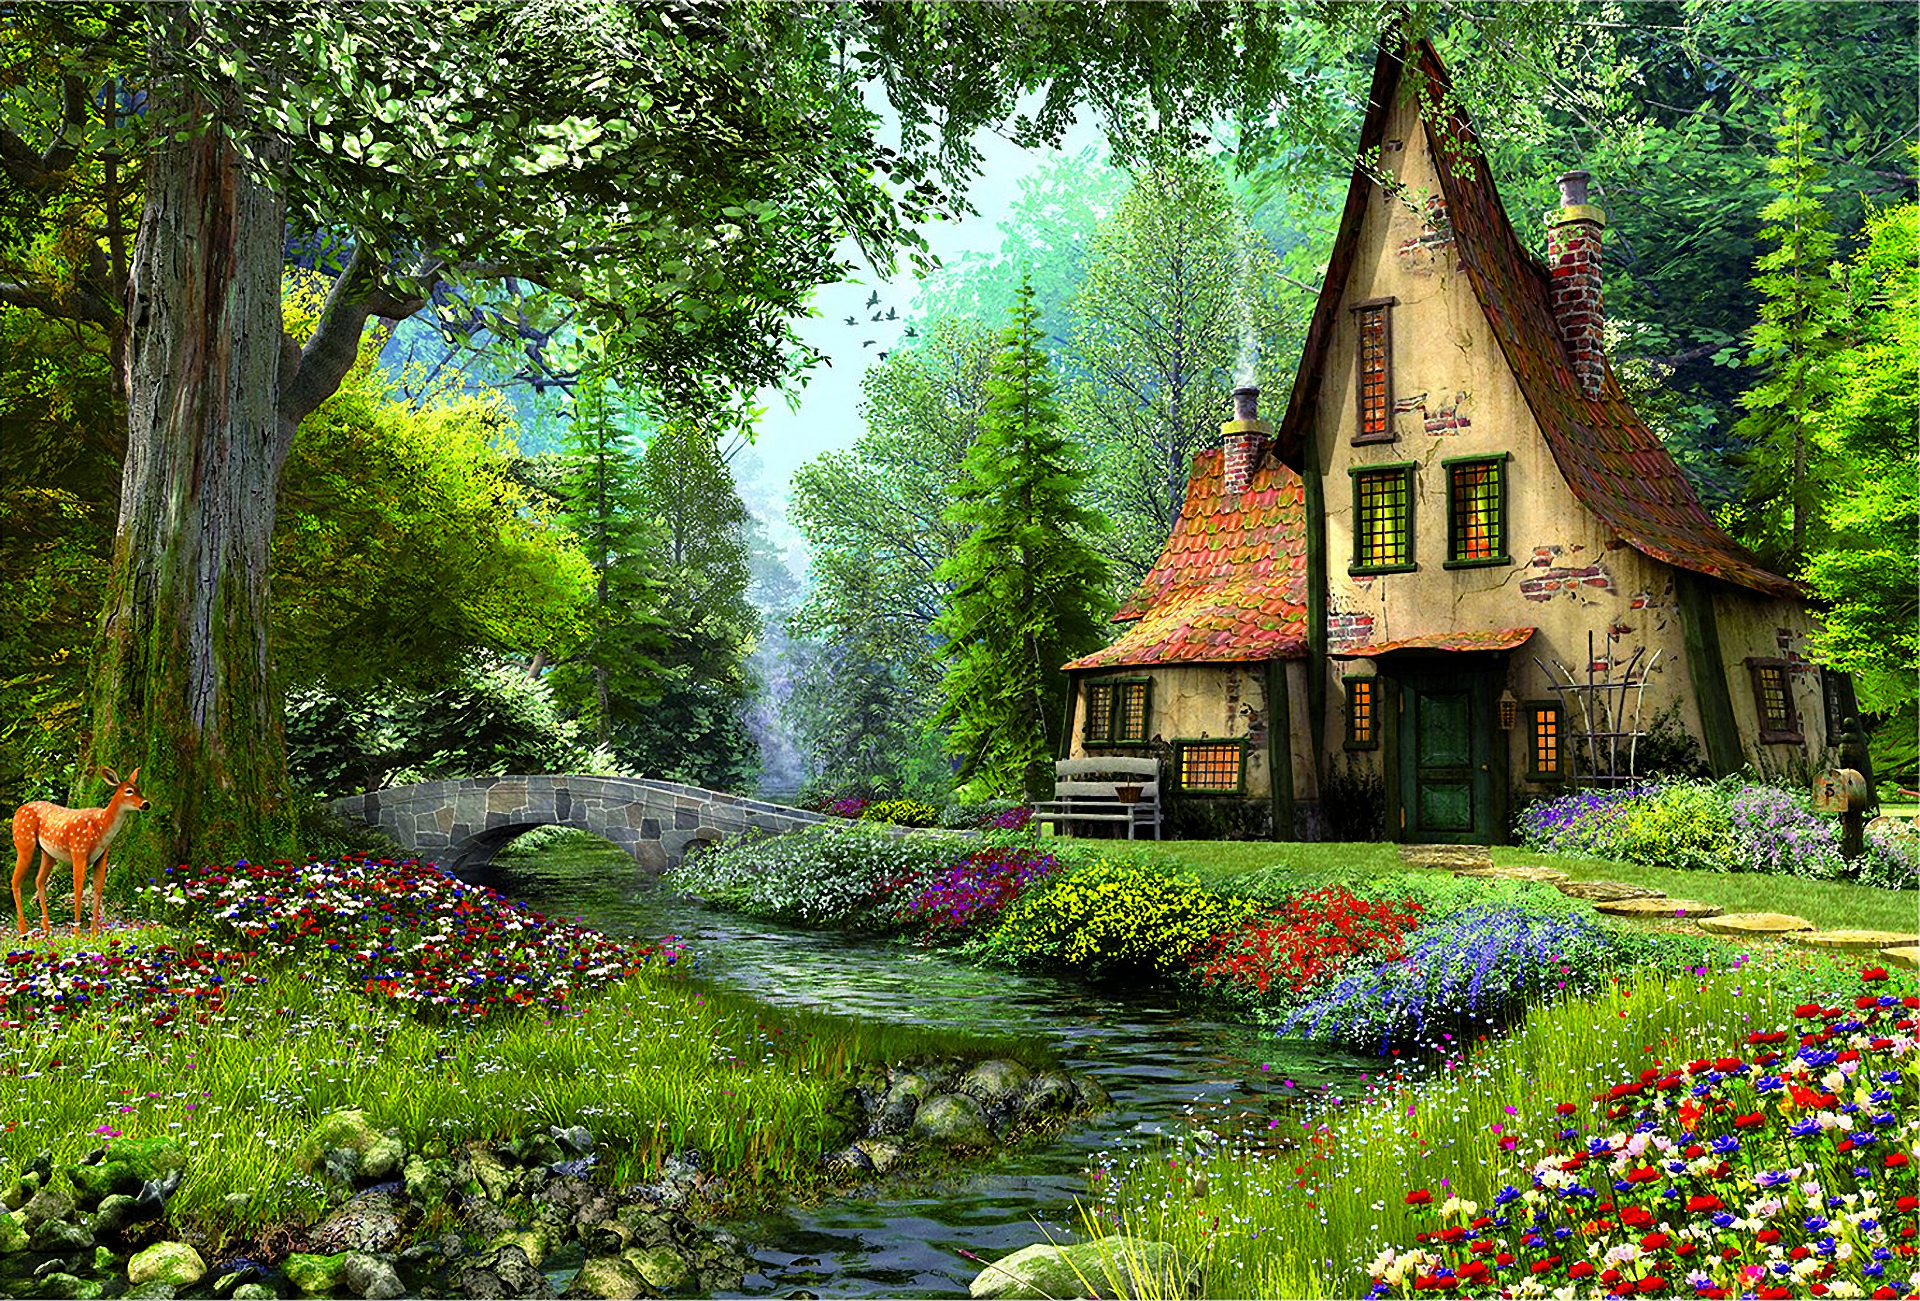 Airbnb Tiny Houses Fairytale House In The Forest Hd Wallpaper Background